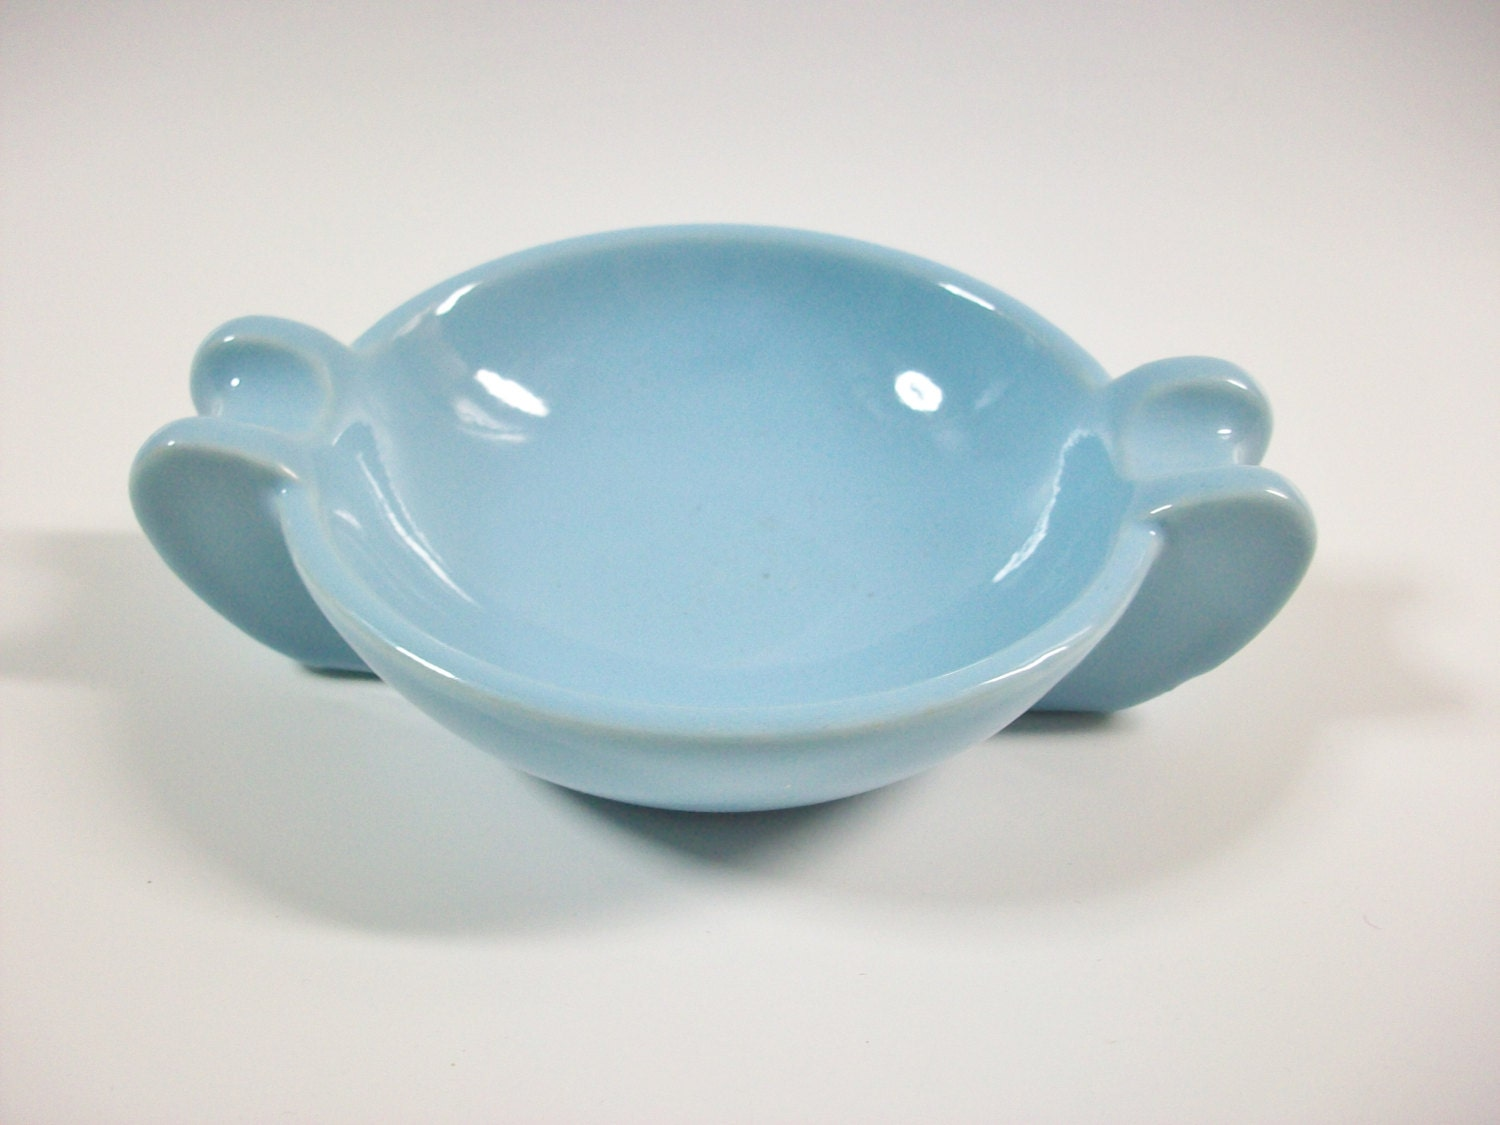 Baby Blue Ashtray Vintage Ceramic Ashtray Coin Holder or